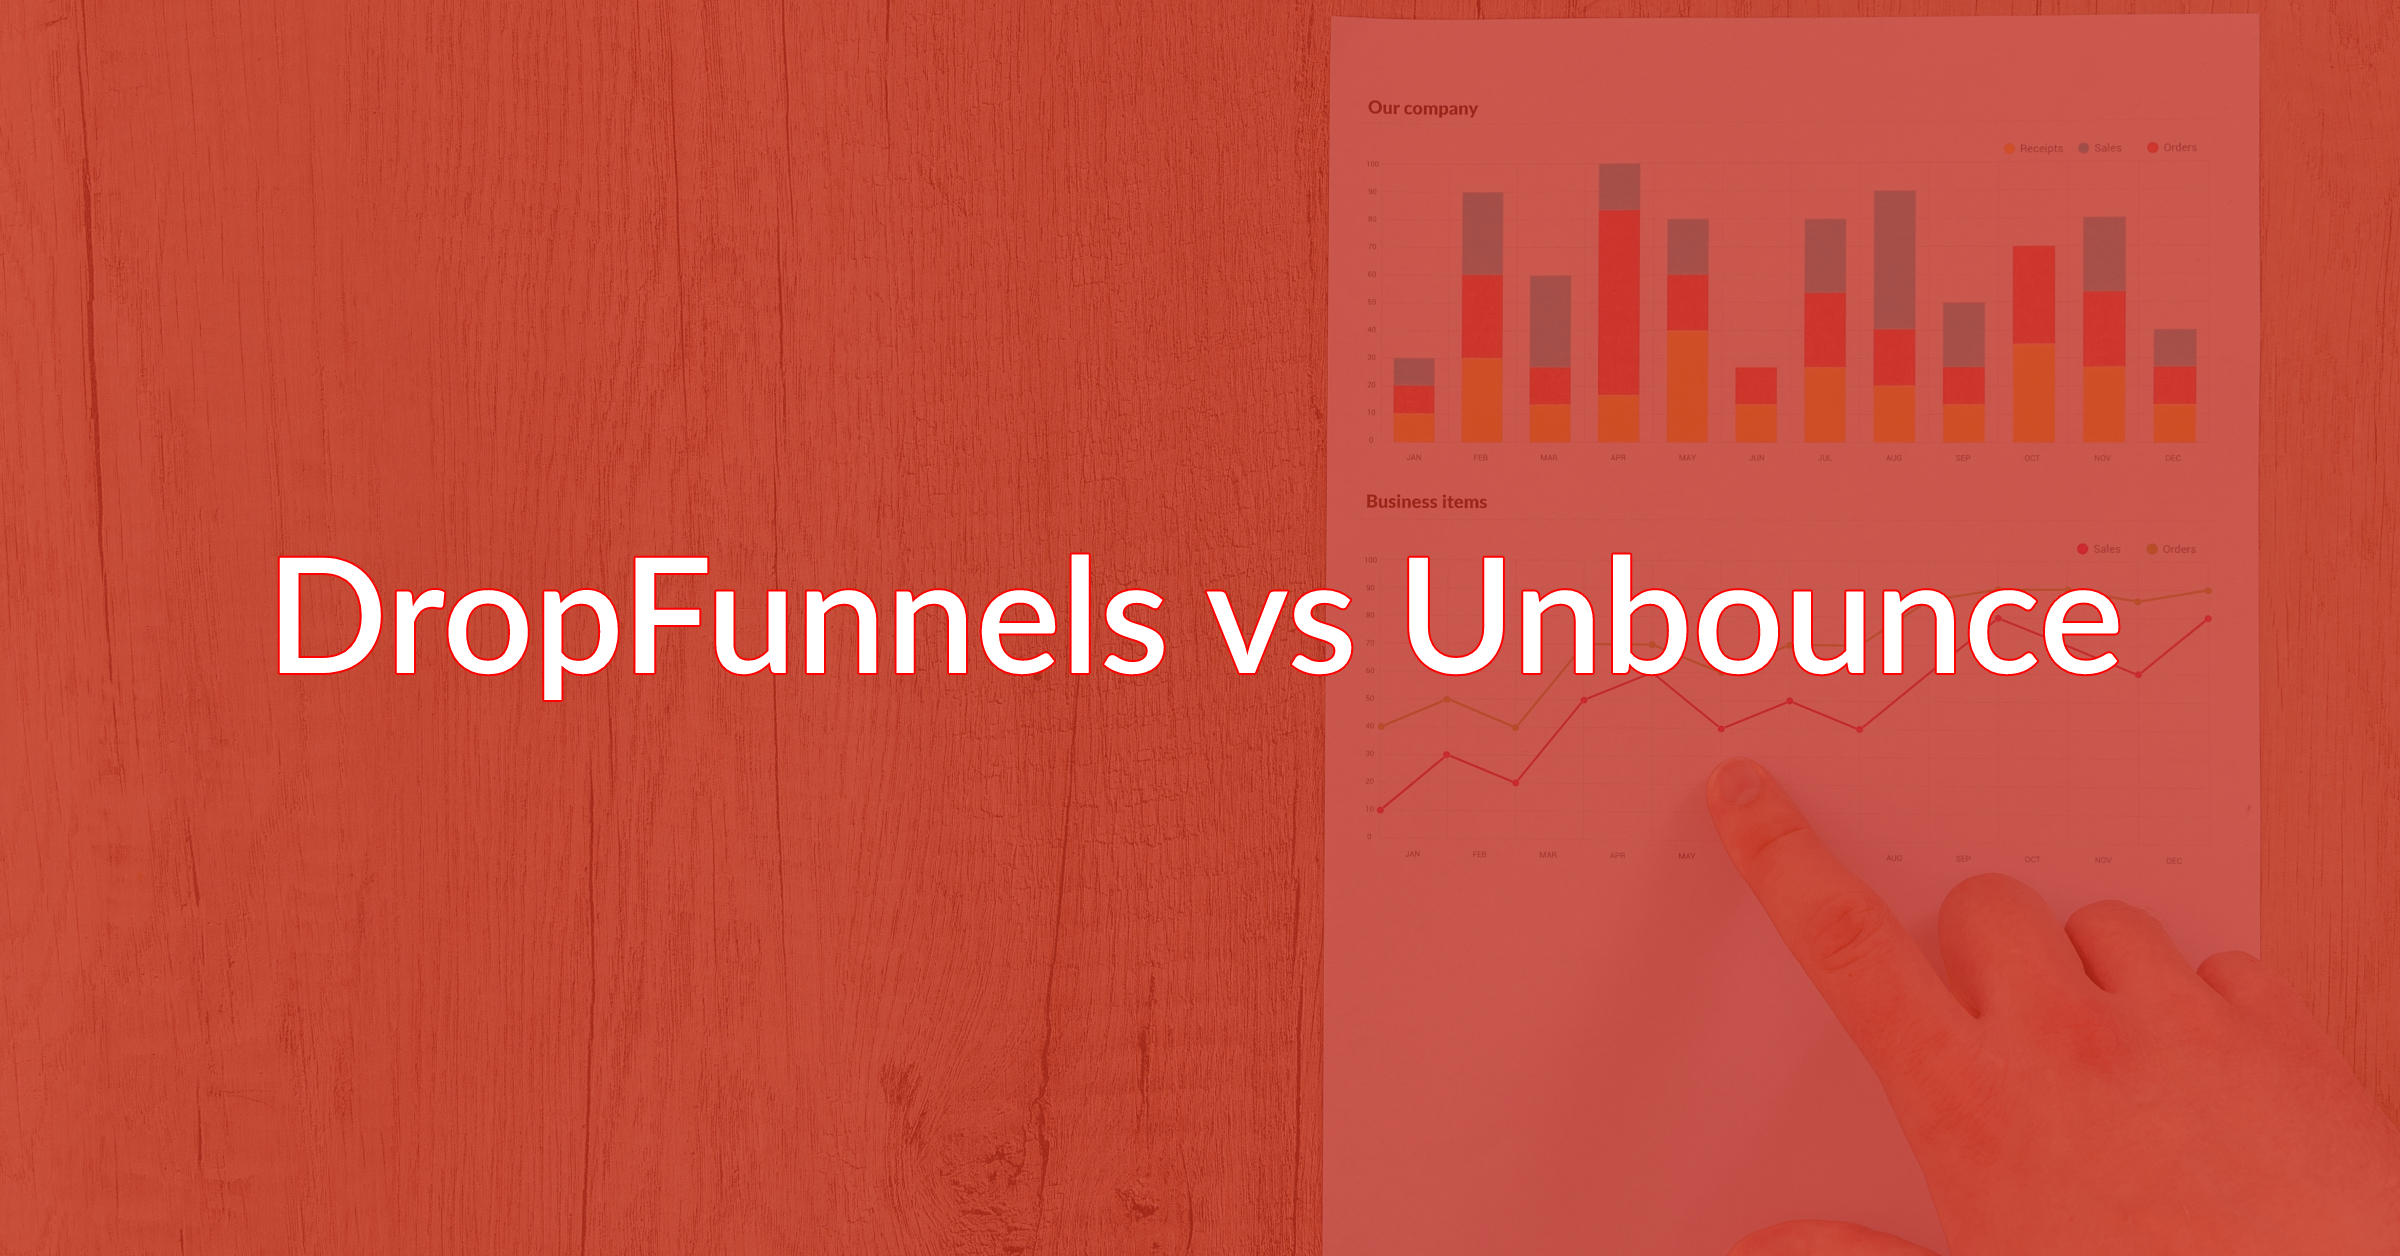 DropFunnels vs Unbounce: Which Should You Be Using?